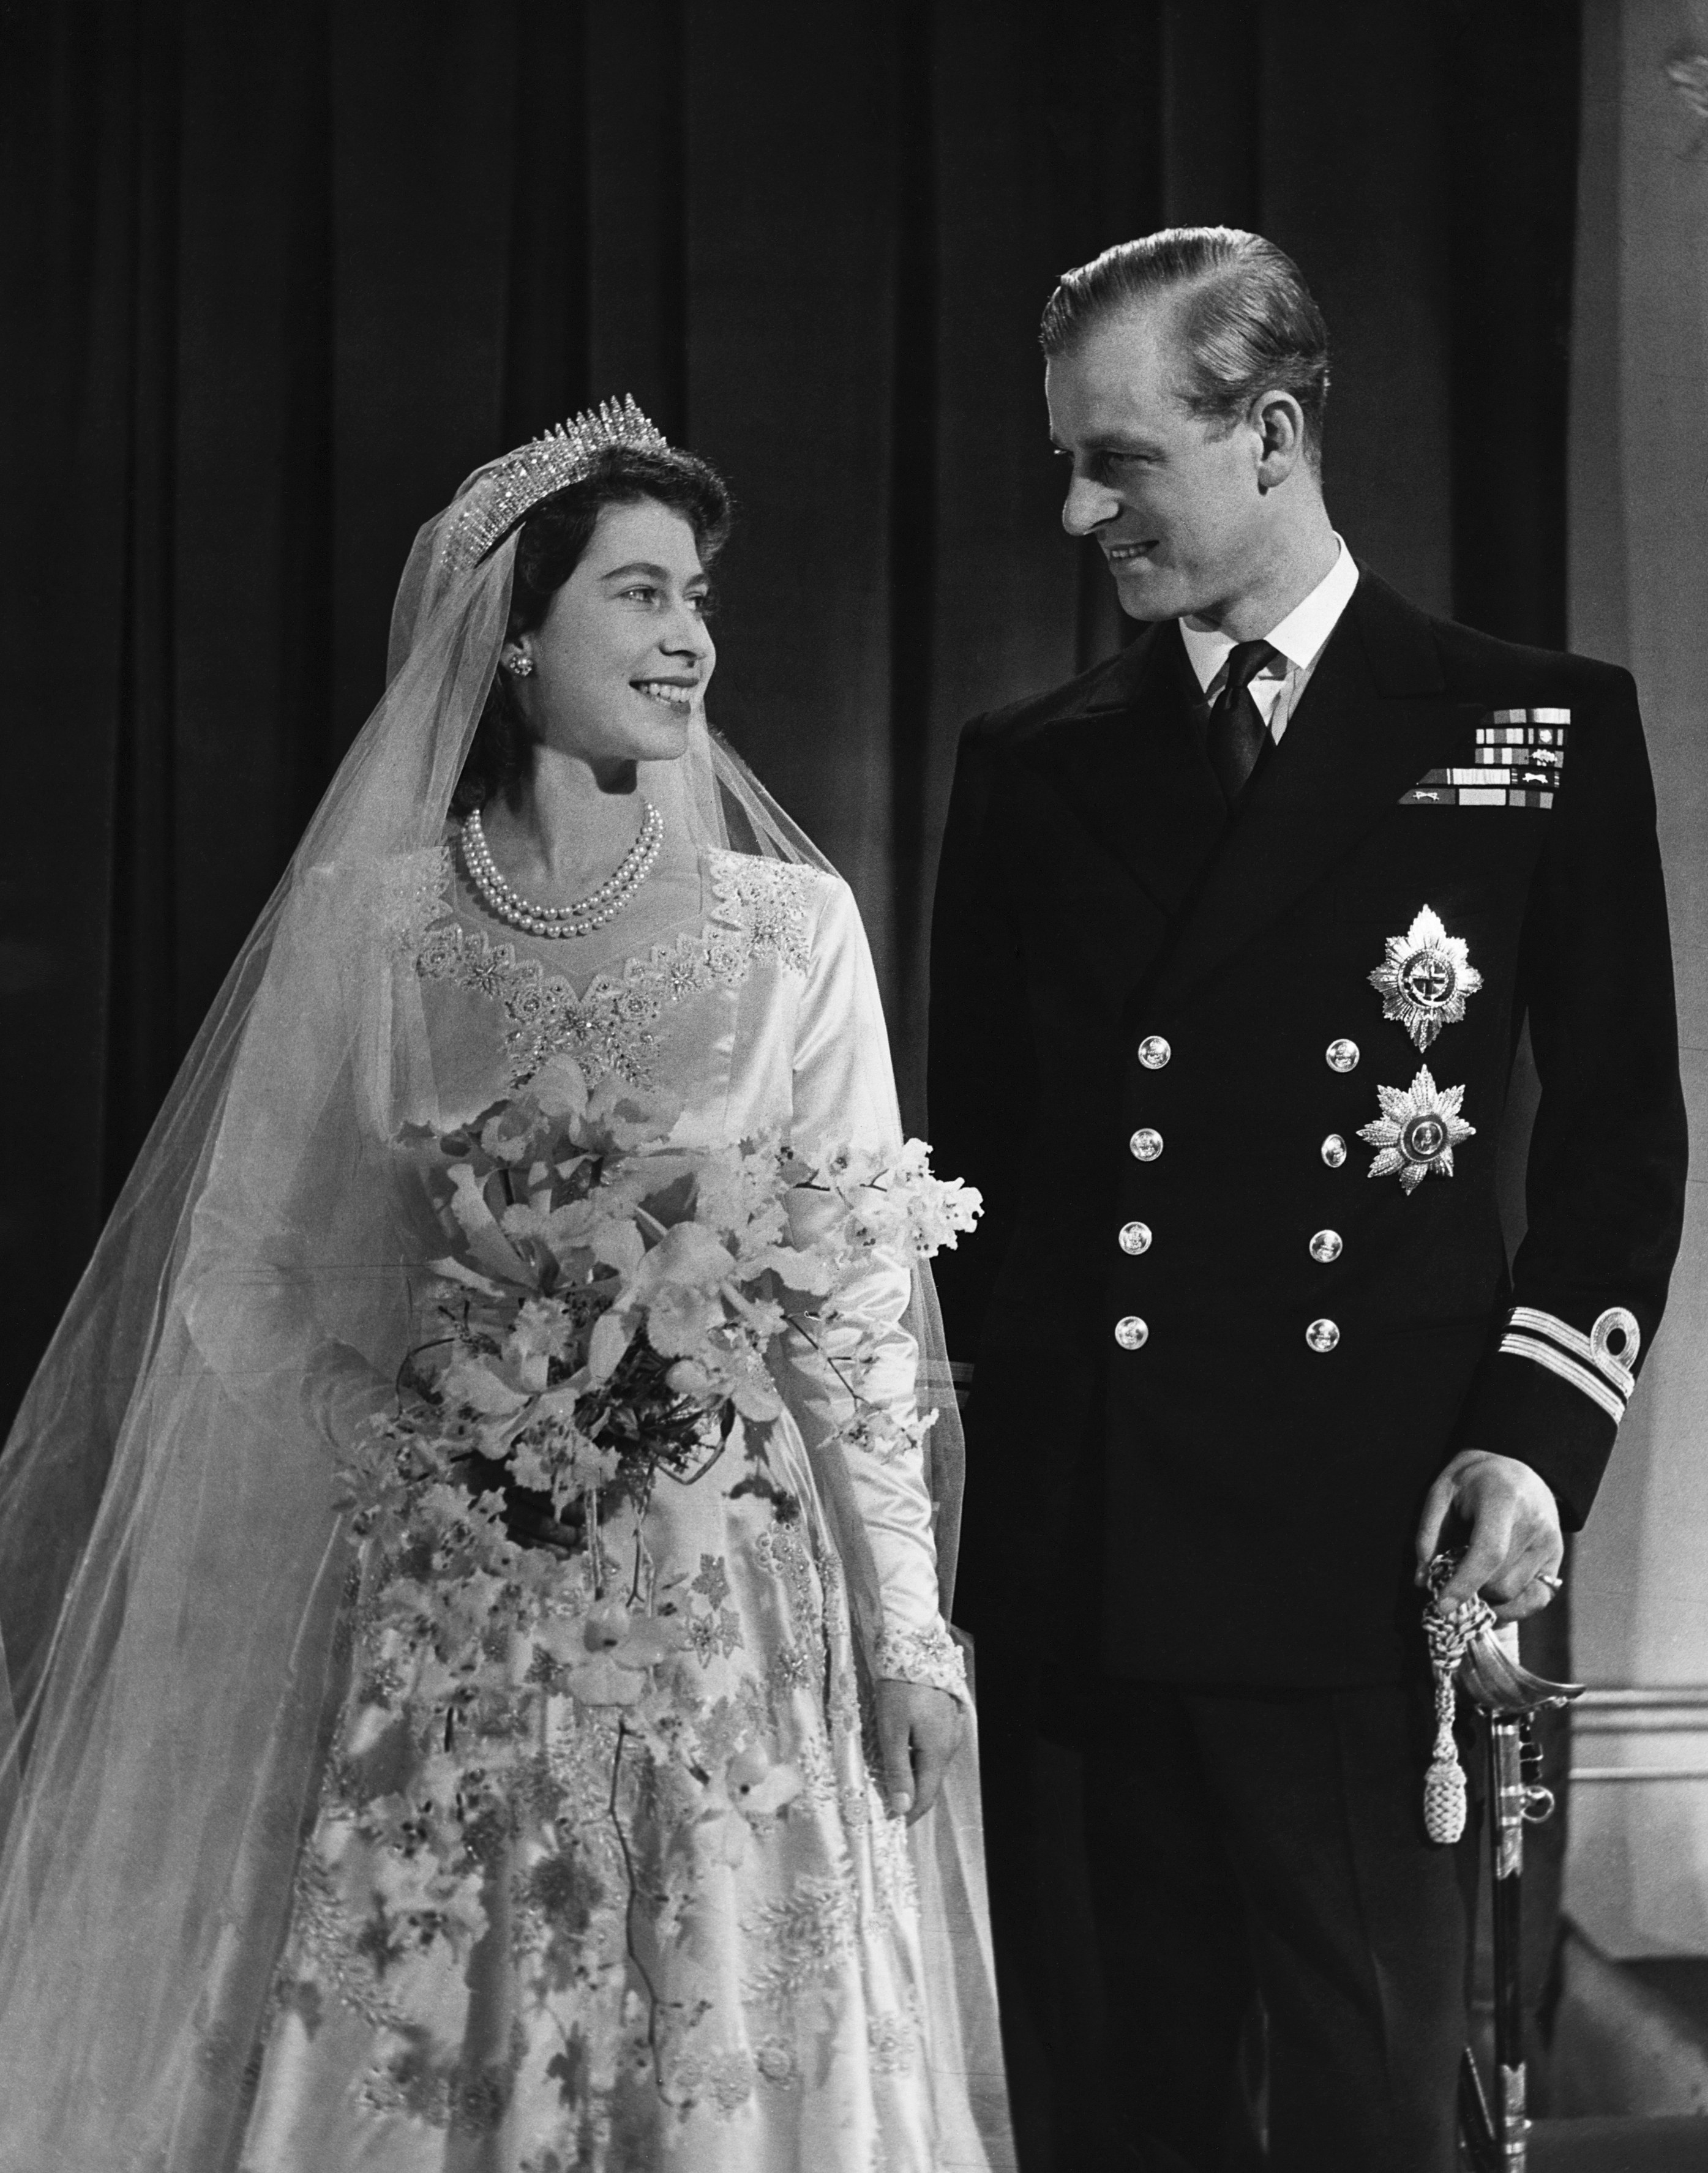 A wedding photo of the queen and her husband